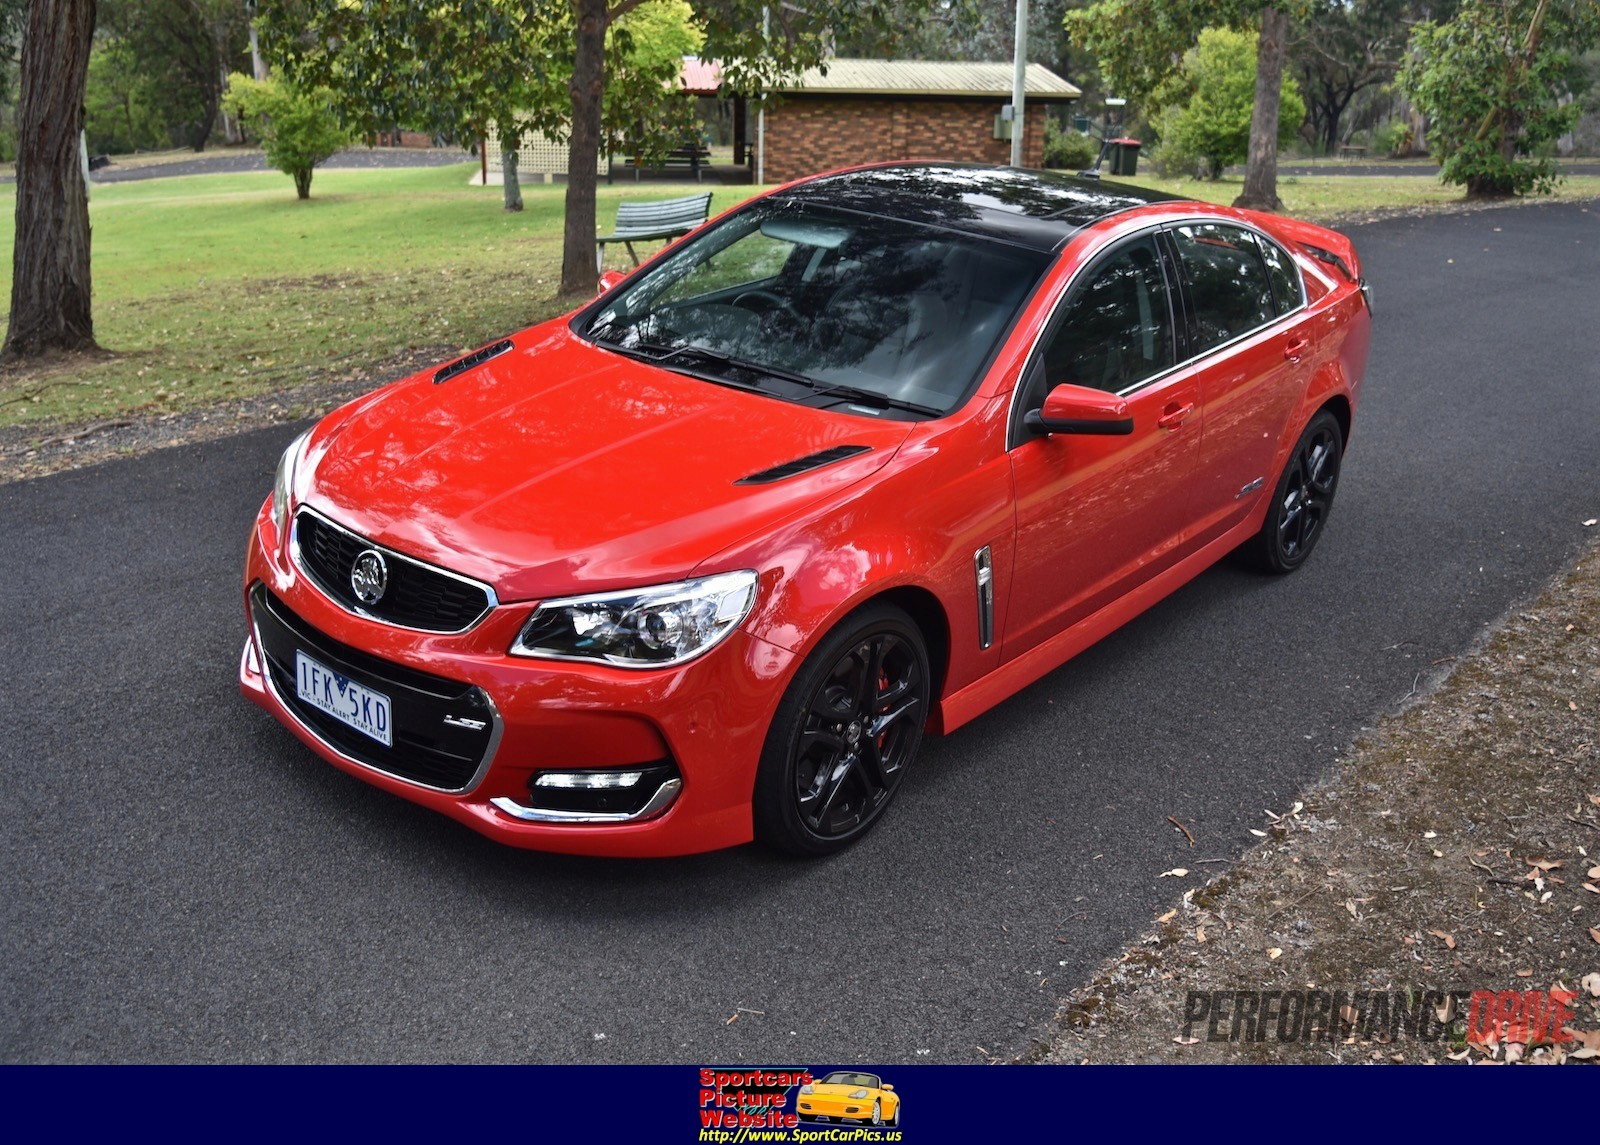 Holden Commodore SS - ID: 87245